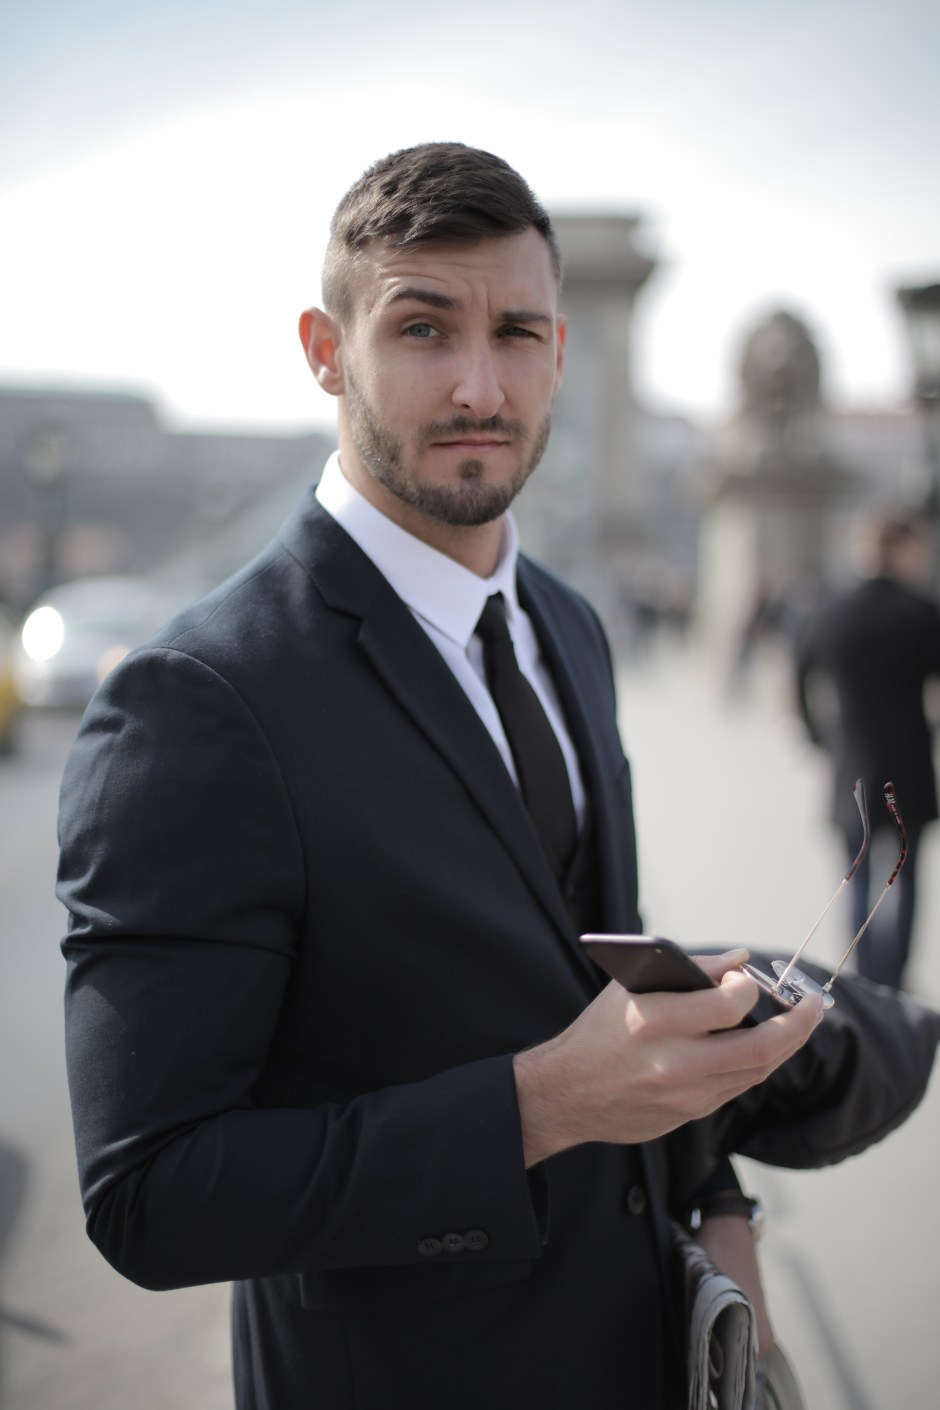 Man in Black Suit Holding Smartphone and Sunglasses